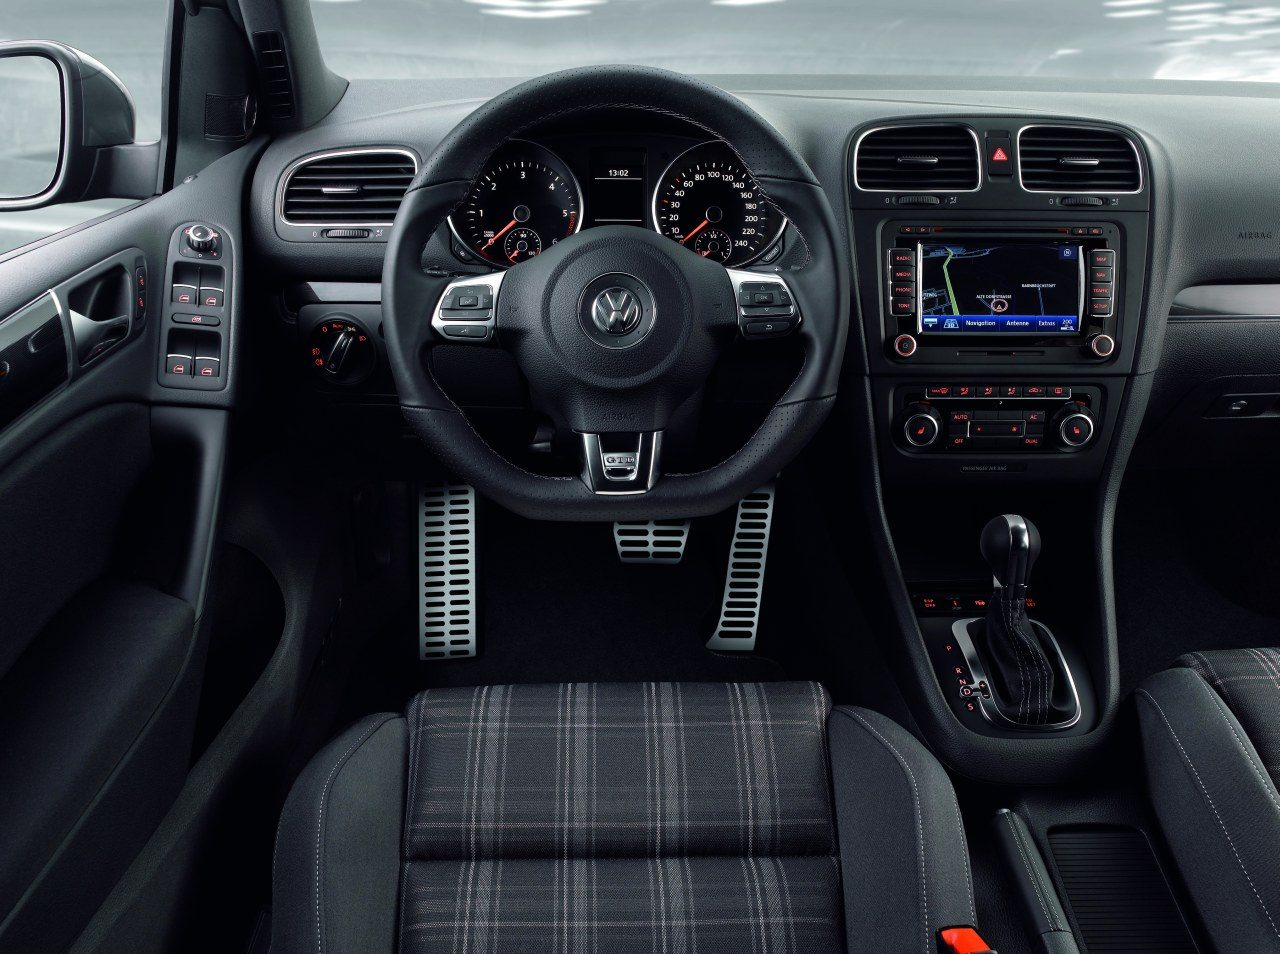 volkswagen golf vi gtd topic ufficiale 2009 volkswagen autopareri. Black Bedroom Furniture Sets. Home Design Ideas